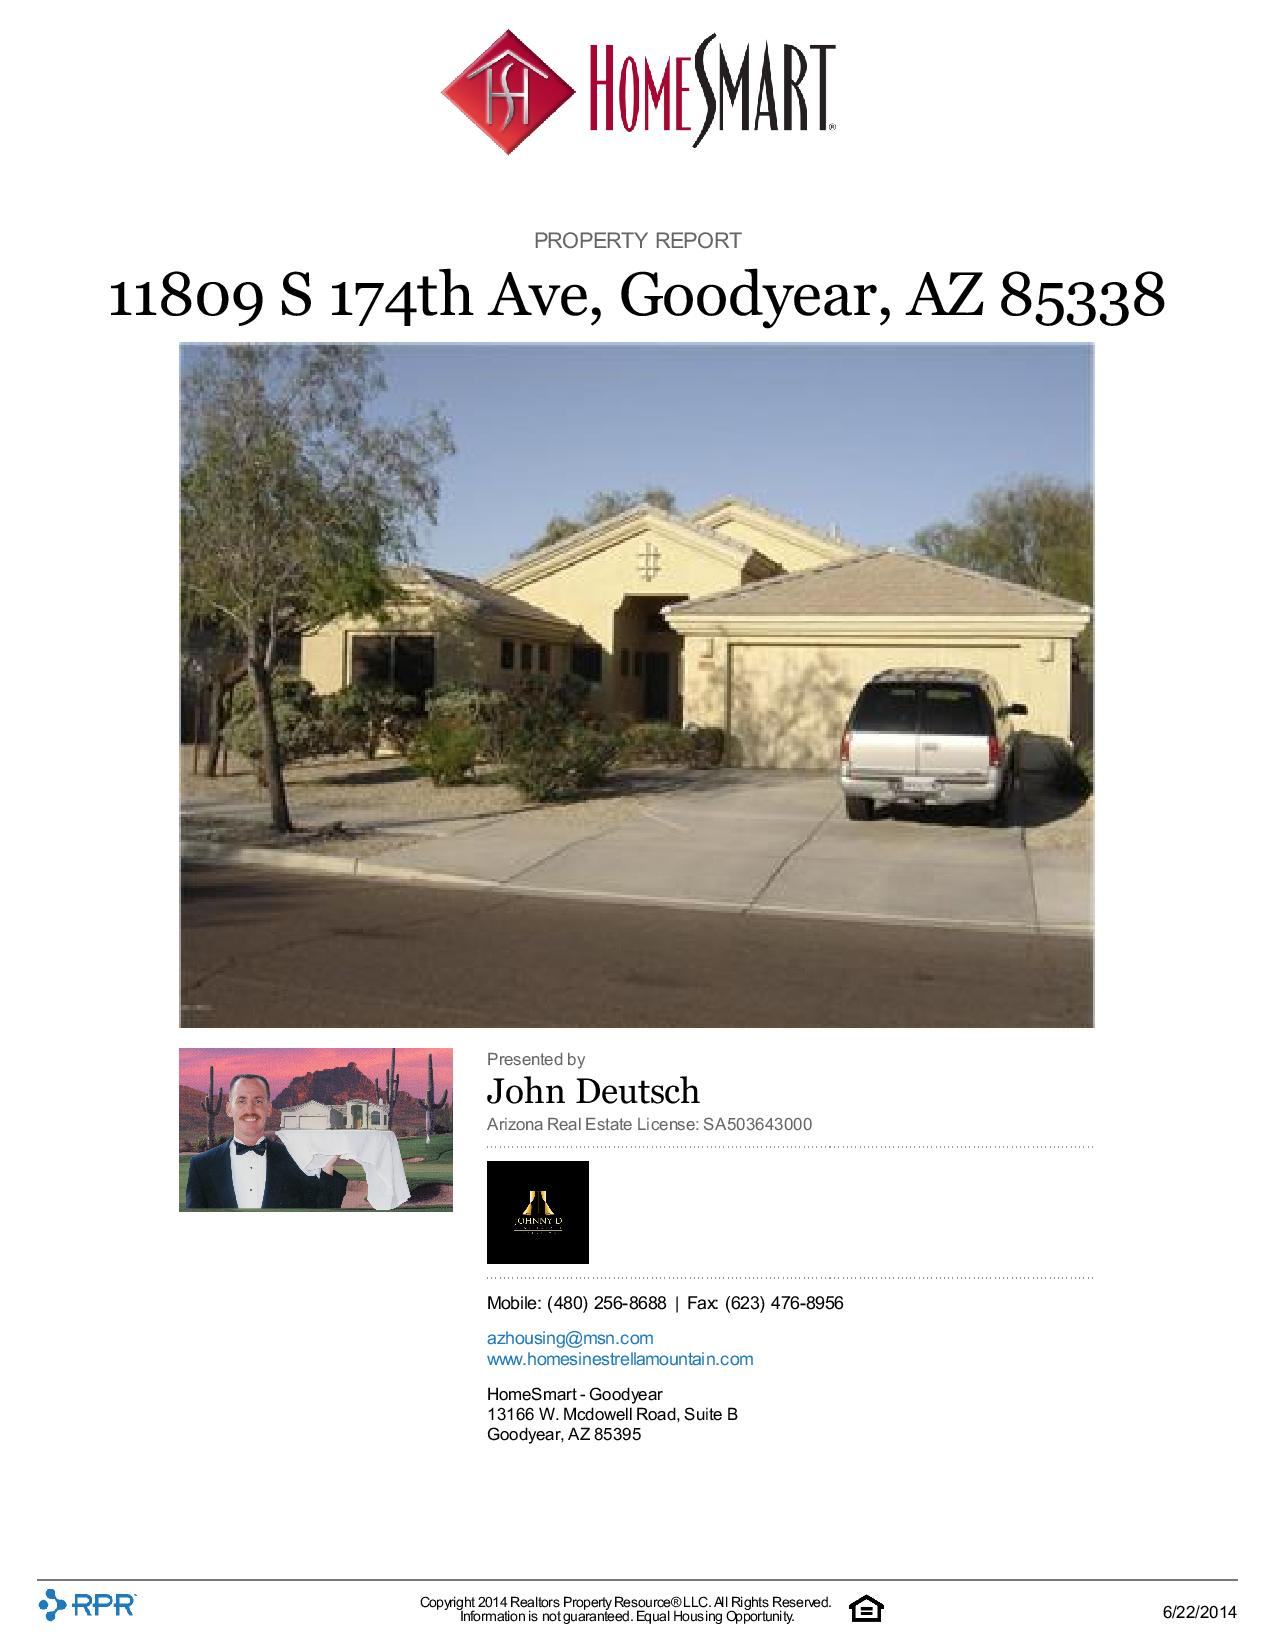 11809-S-174th-Ave-Goodyear-AZ-85338-page-001